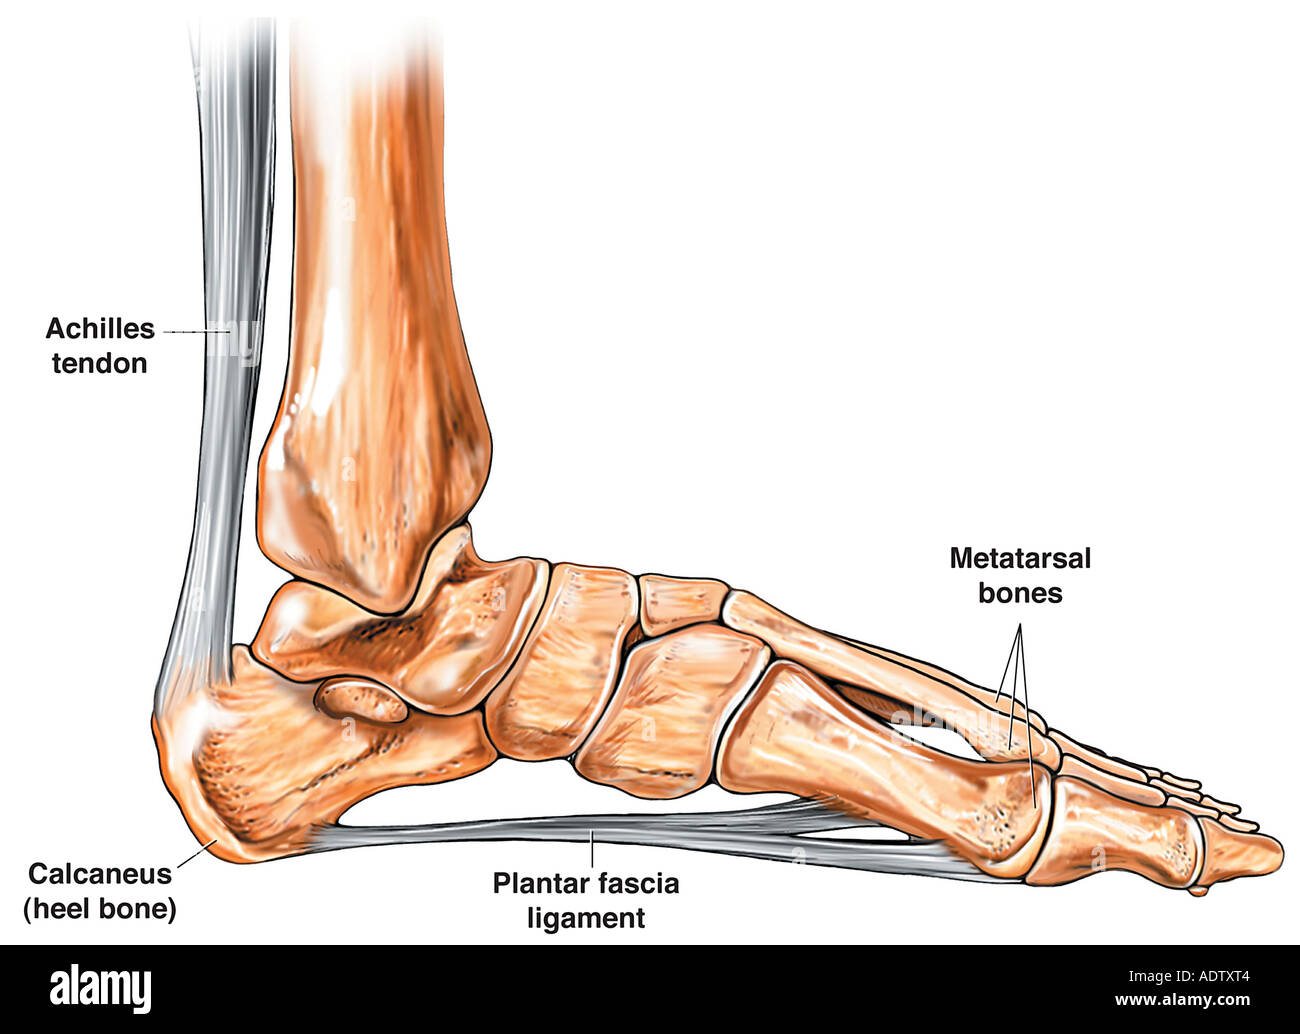 Anatomy Of The Foot And Ankle Stock Photo 7710723 Alamy